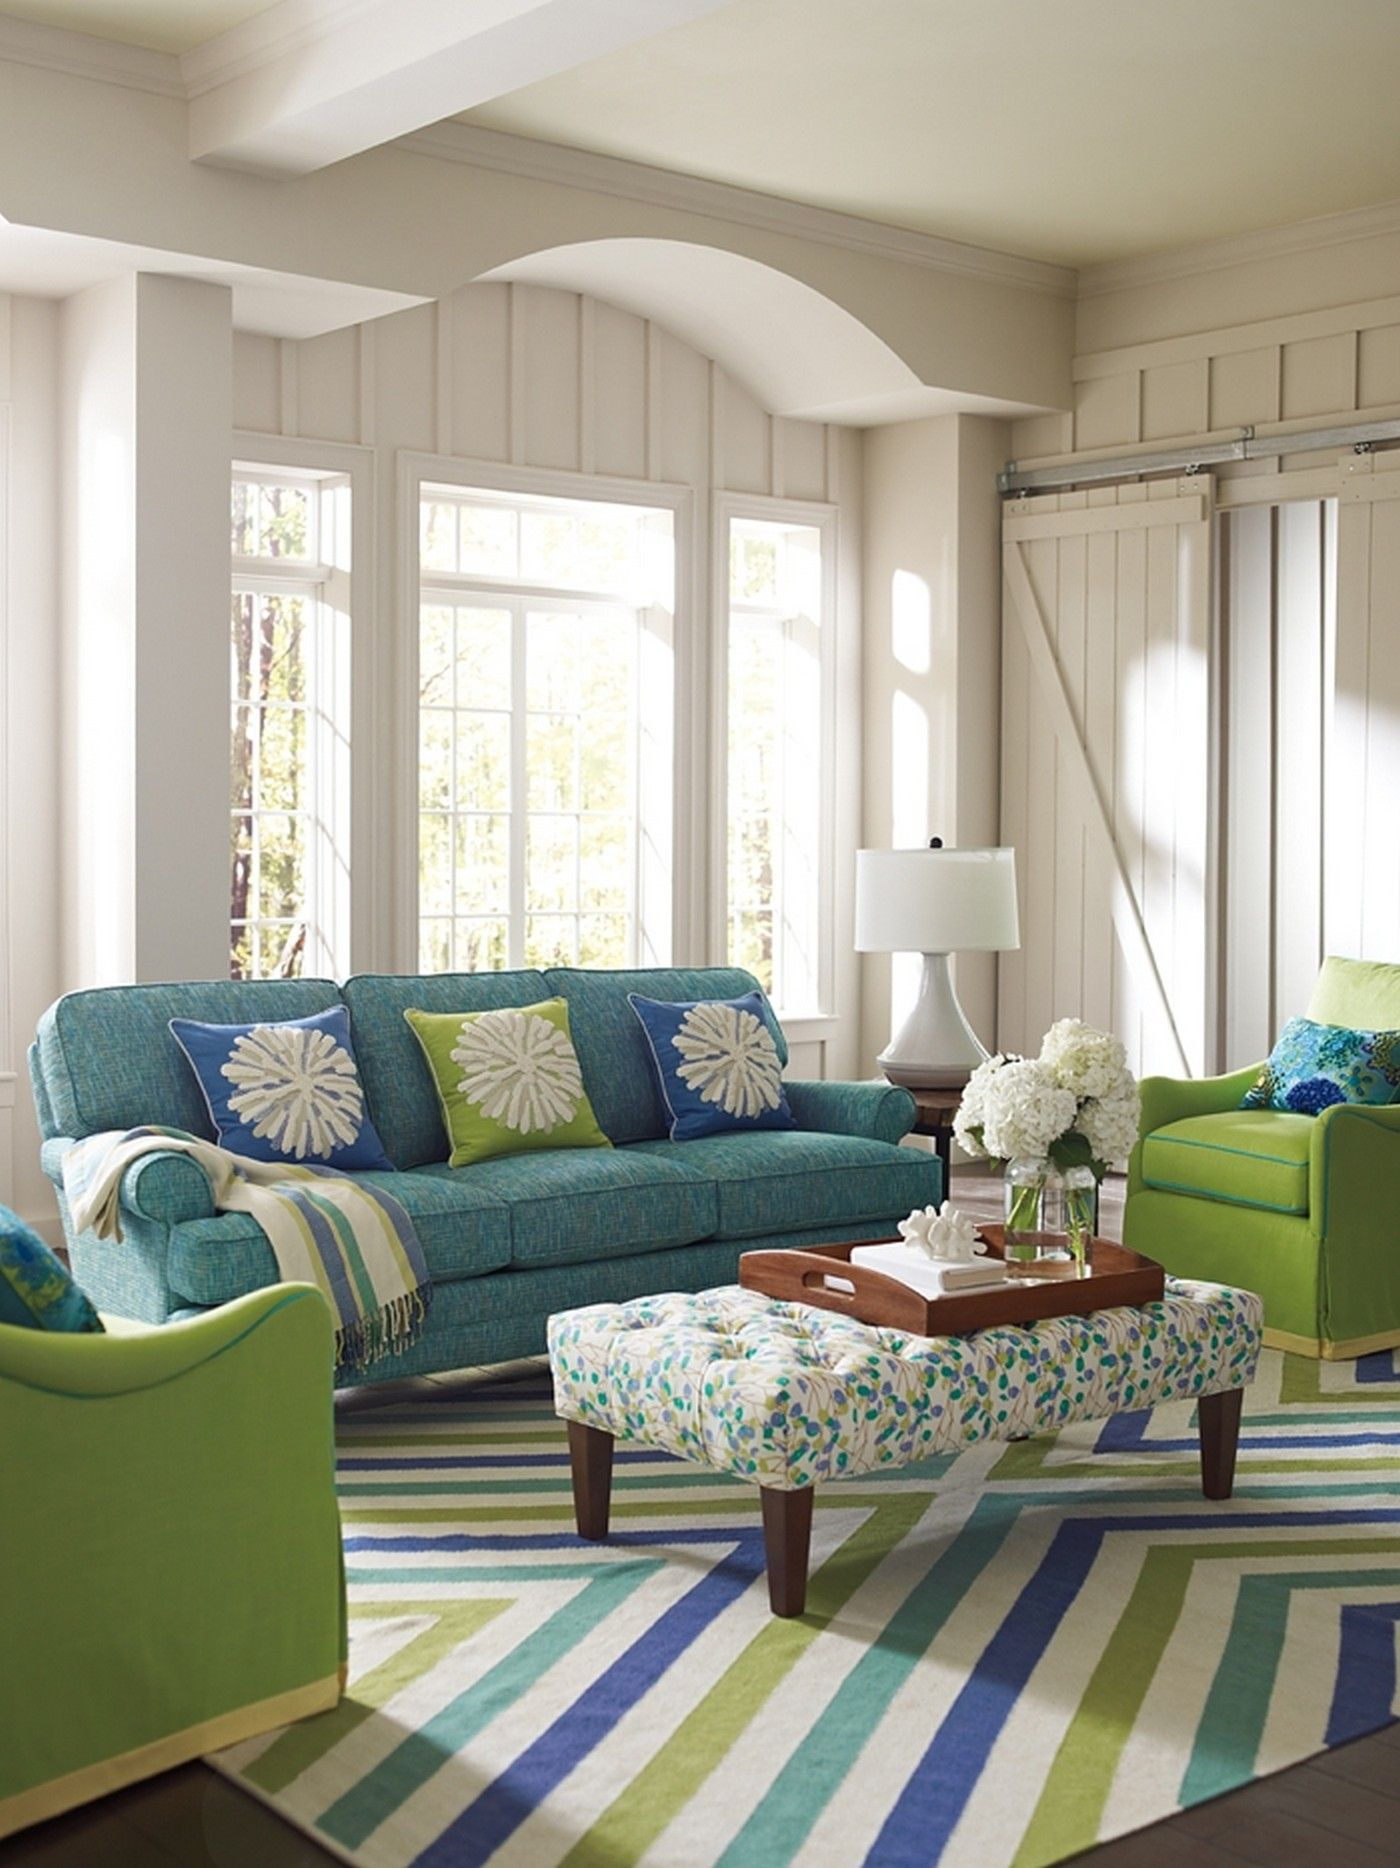 Turquoise sofa contemporary living room katie rosenfeld design - 30 Bright And Colorful Family Friendly Living Room Design Ideas